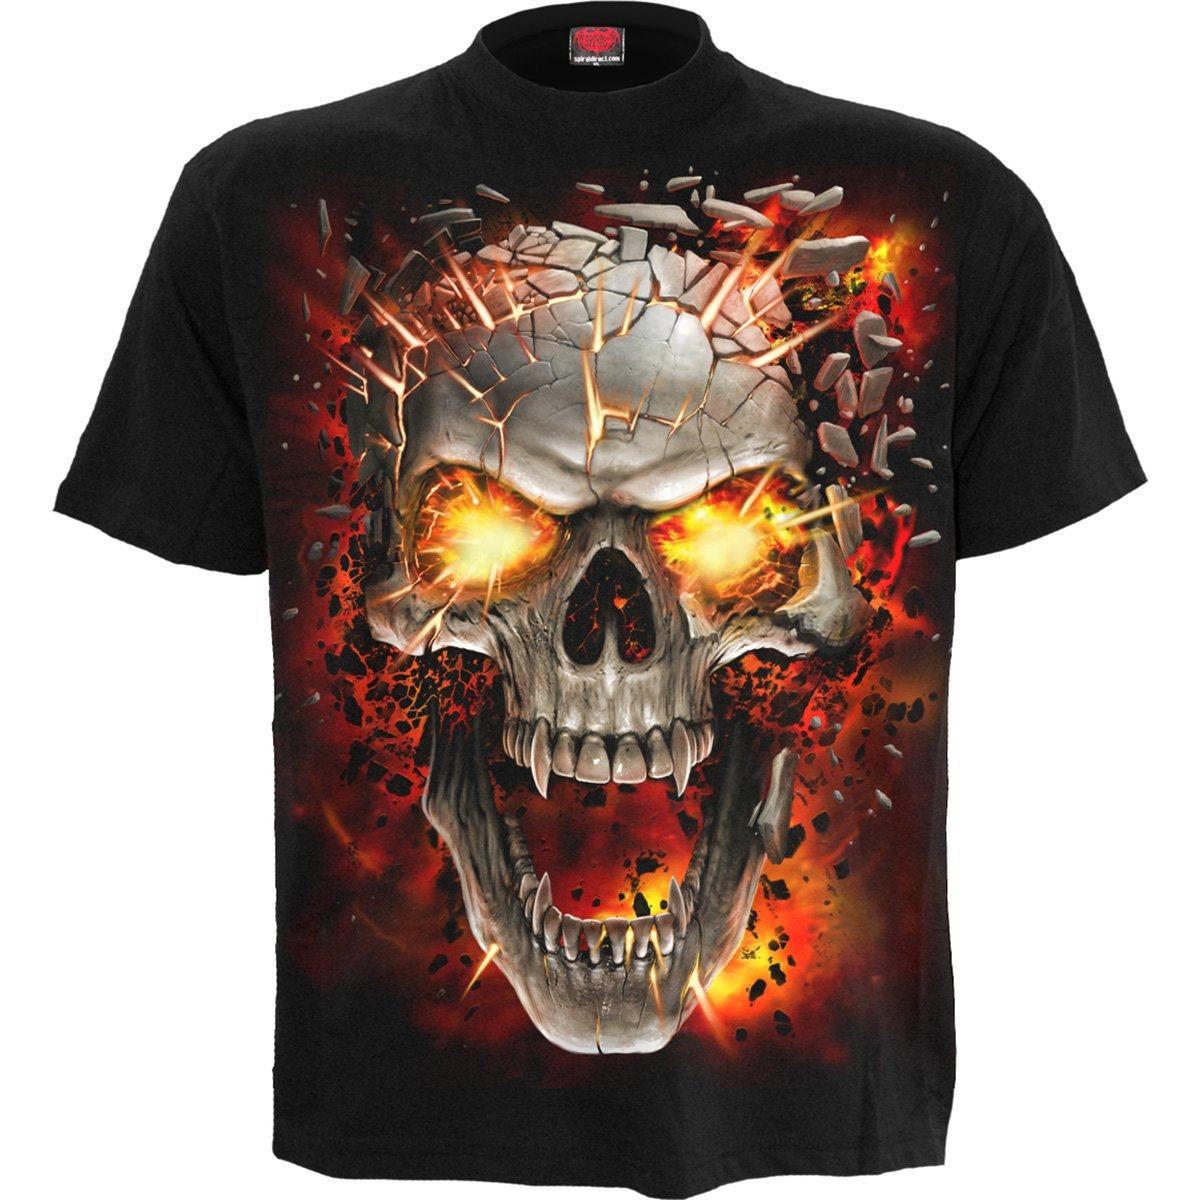 Demonic Skull Blast Kid's Black T-Shirt